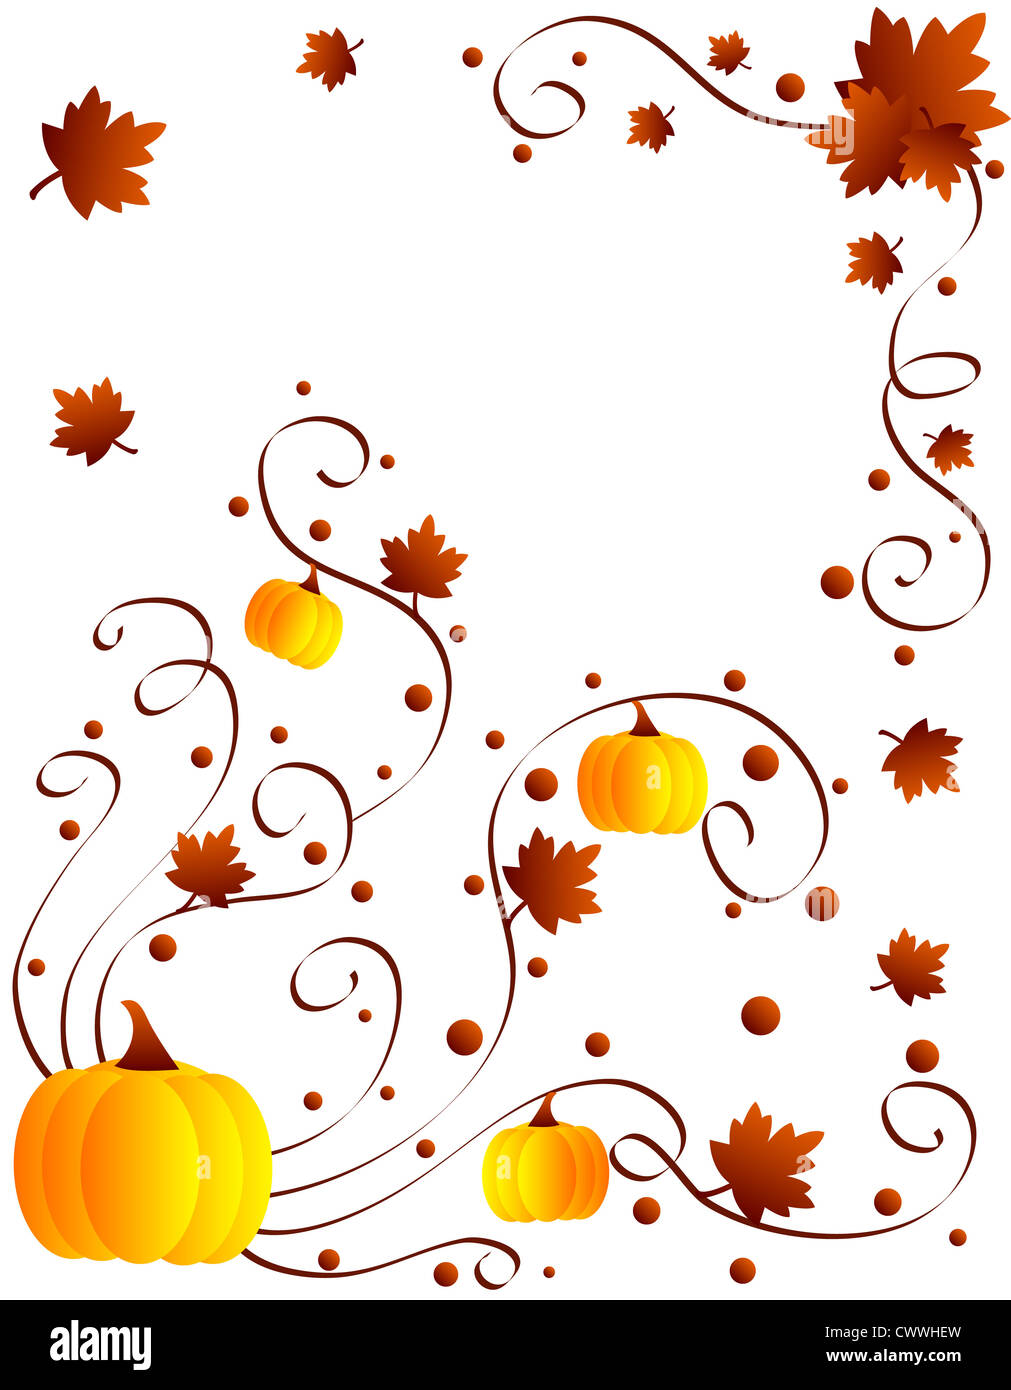 Autumn leaves and pumpkins frame Stock Photo